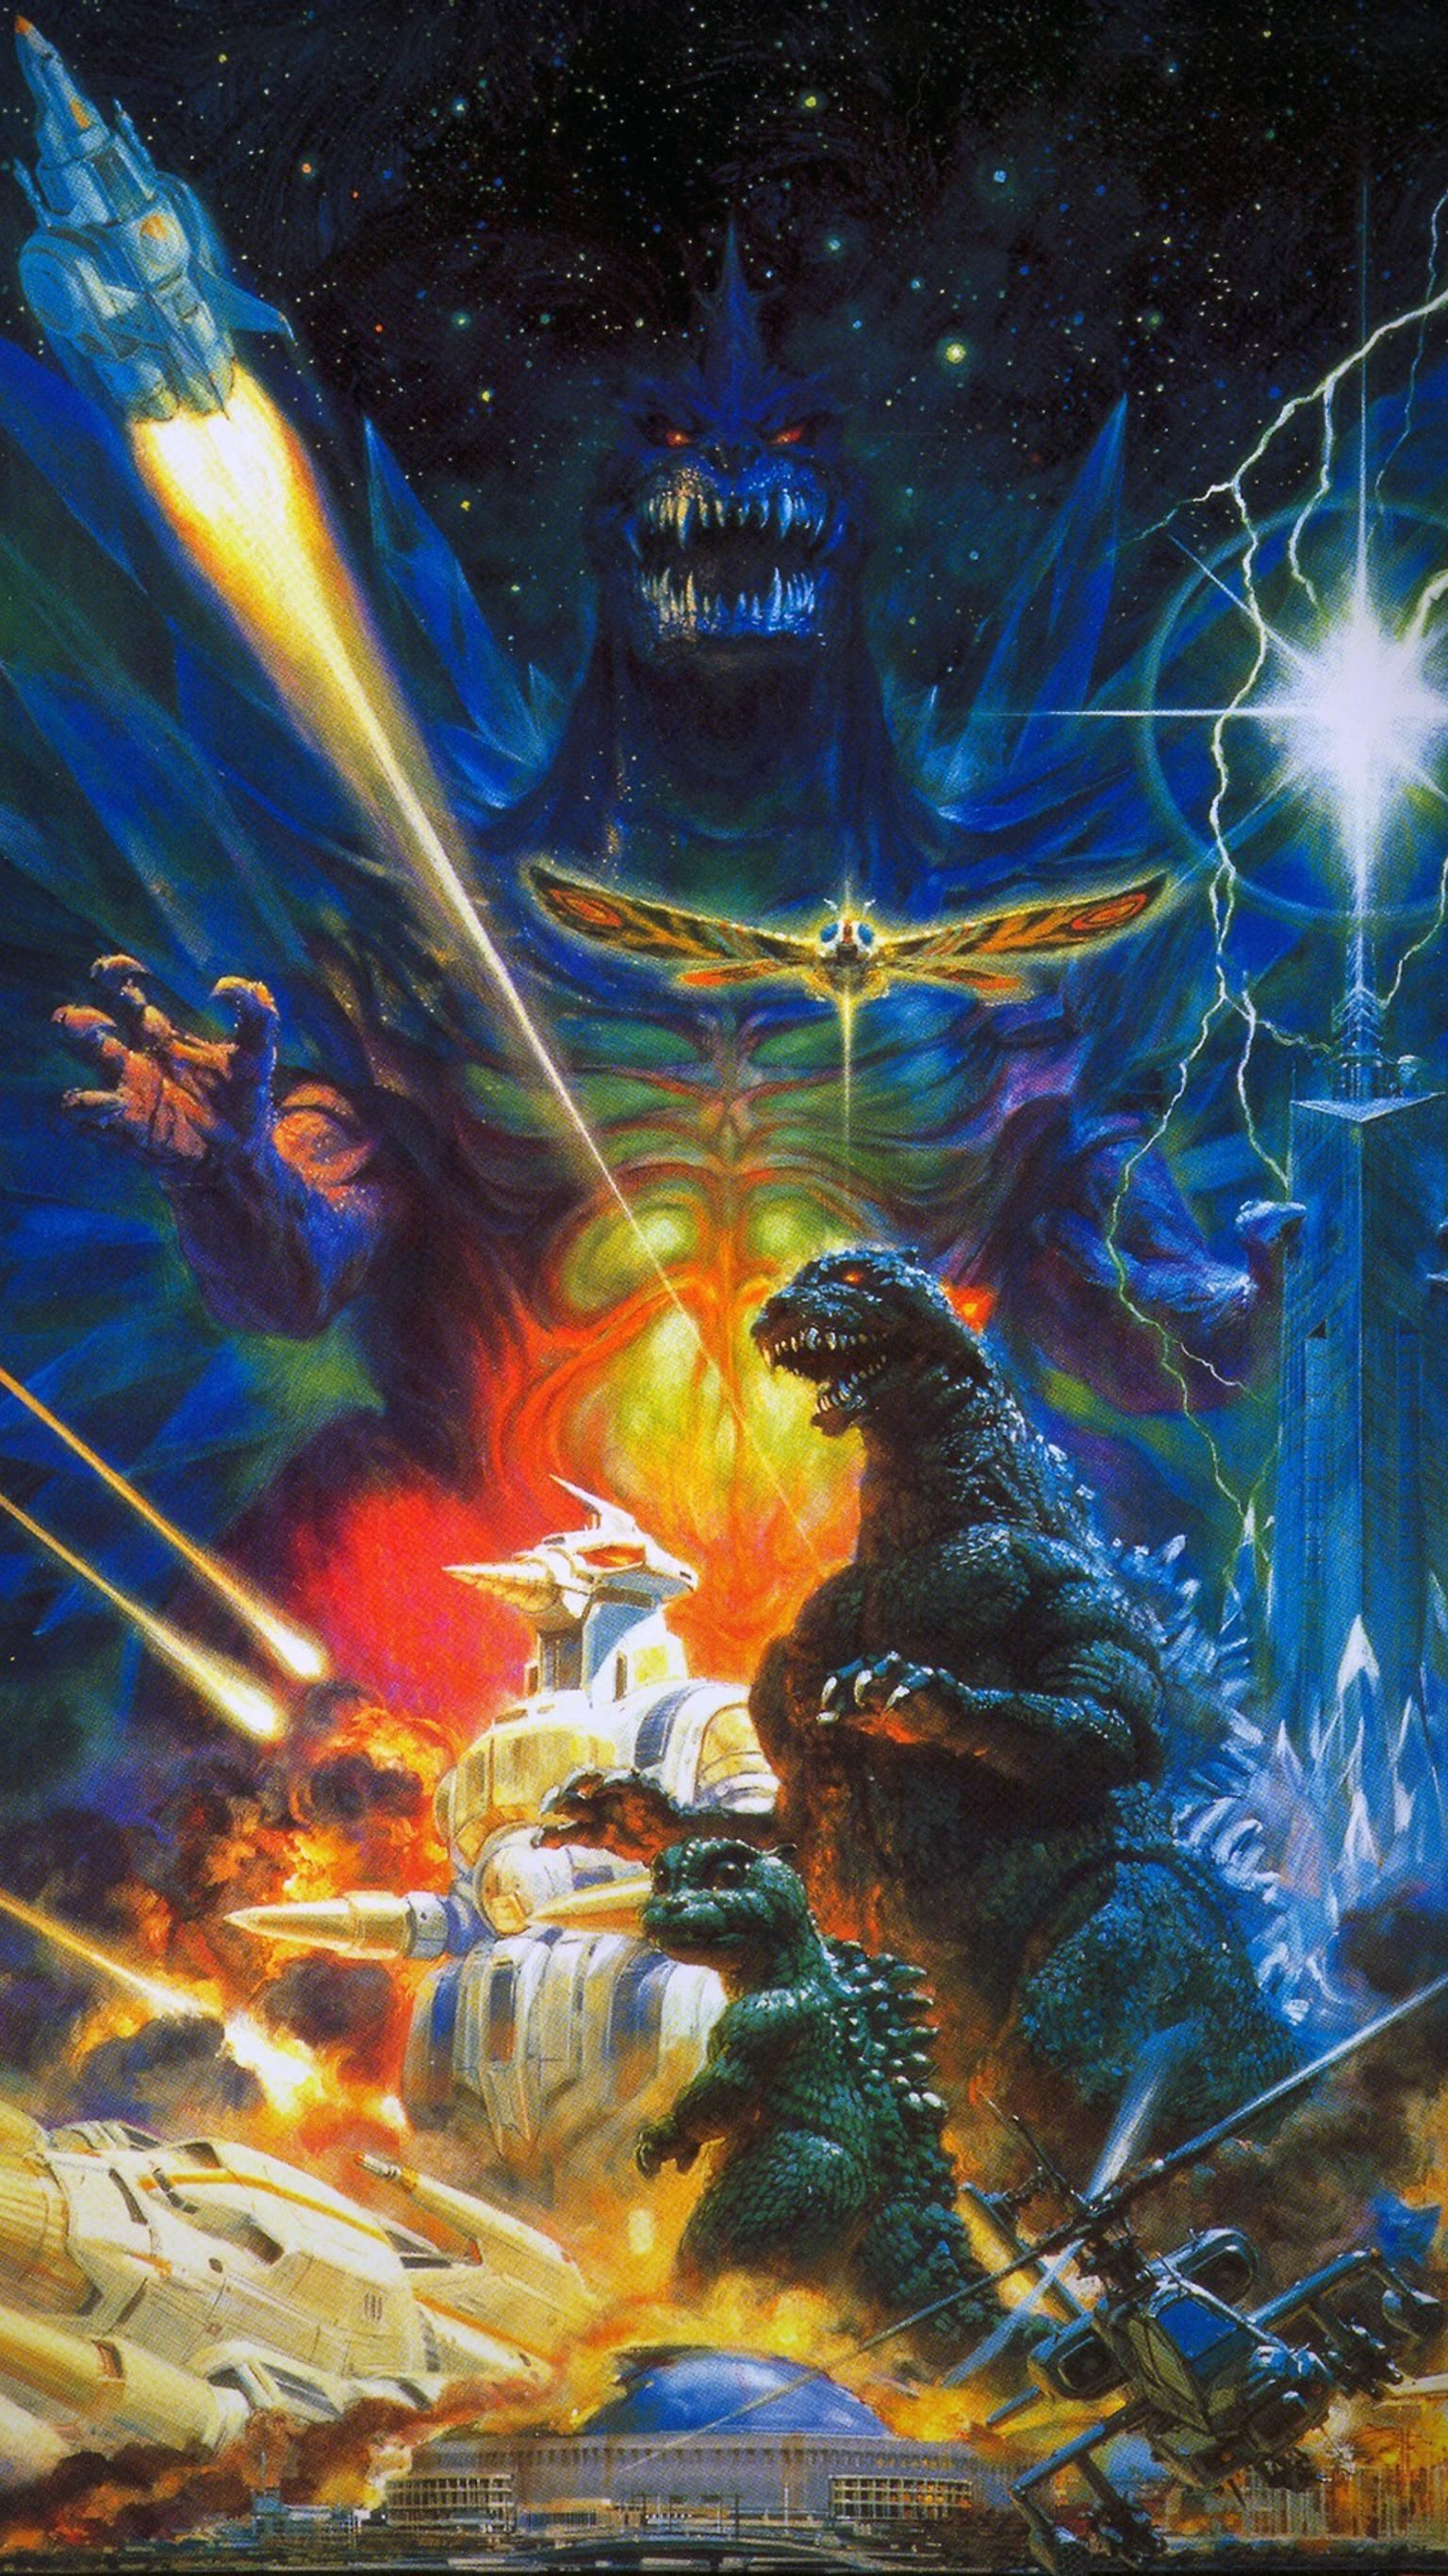 Godzilla vs. SpaceGodzilla (1994) Phone Wallpaper